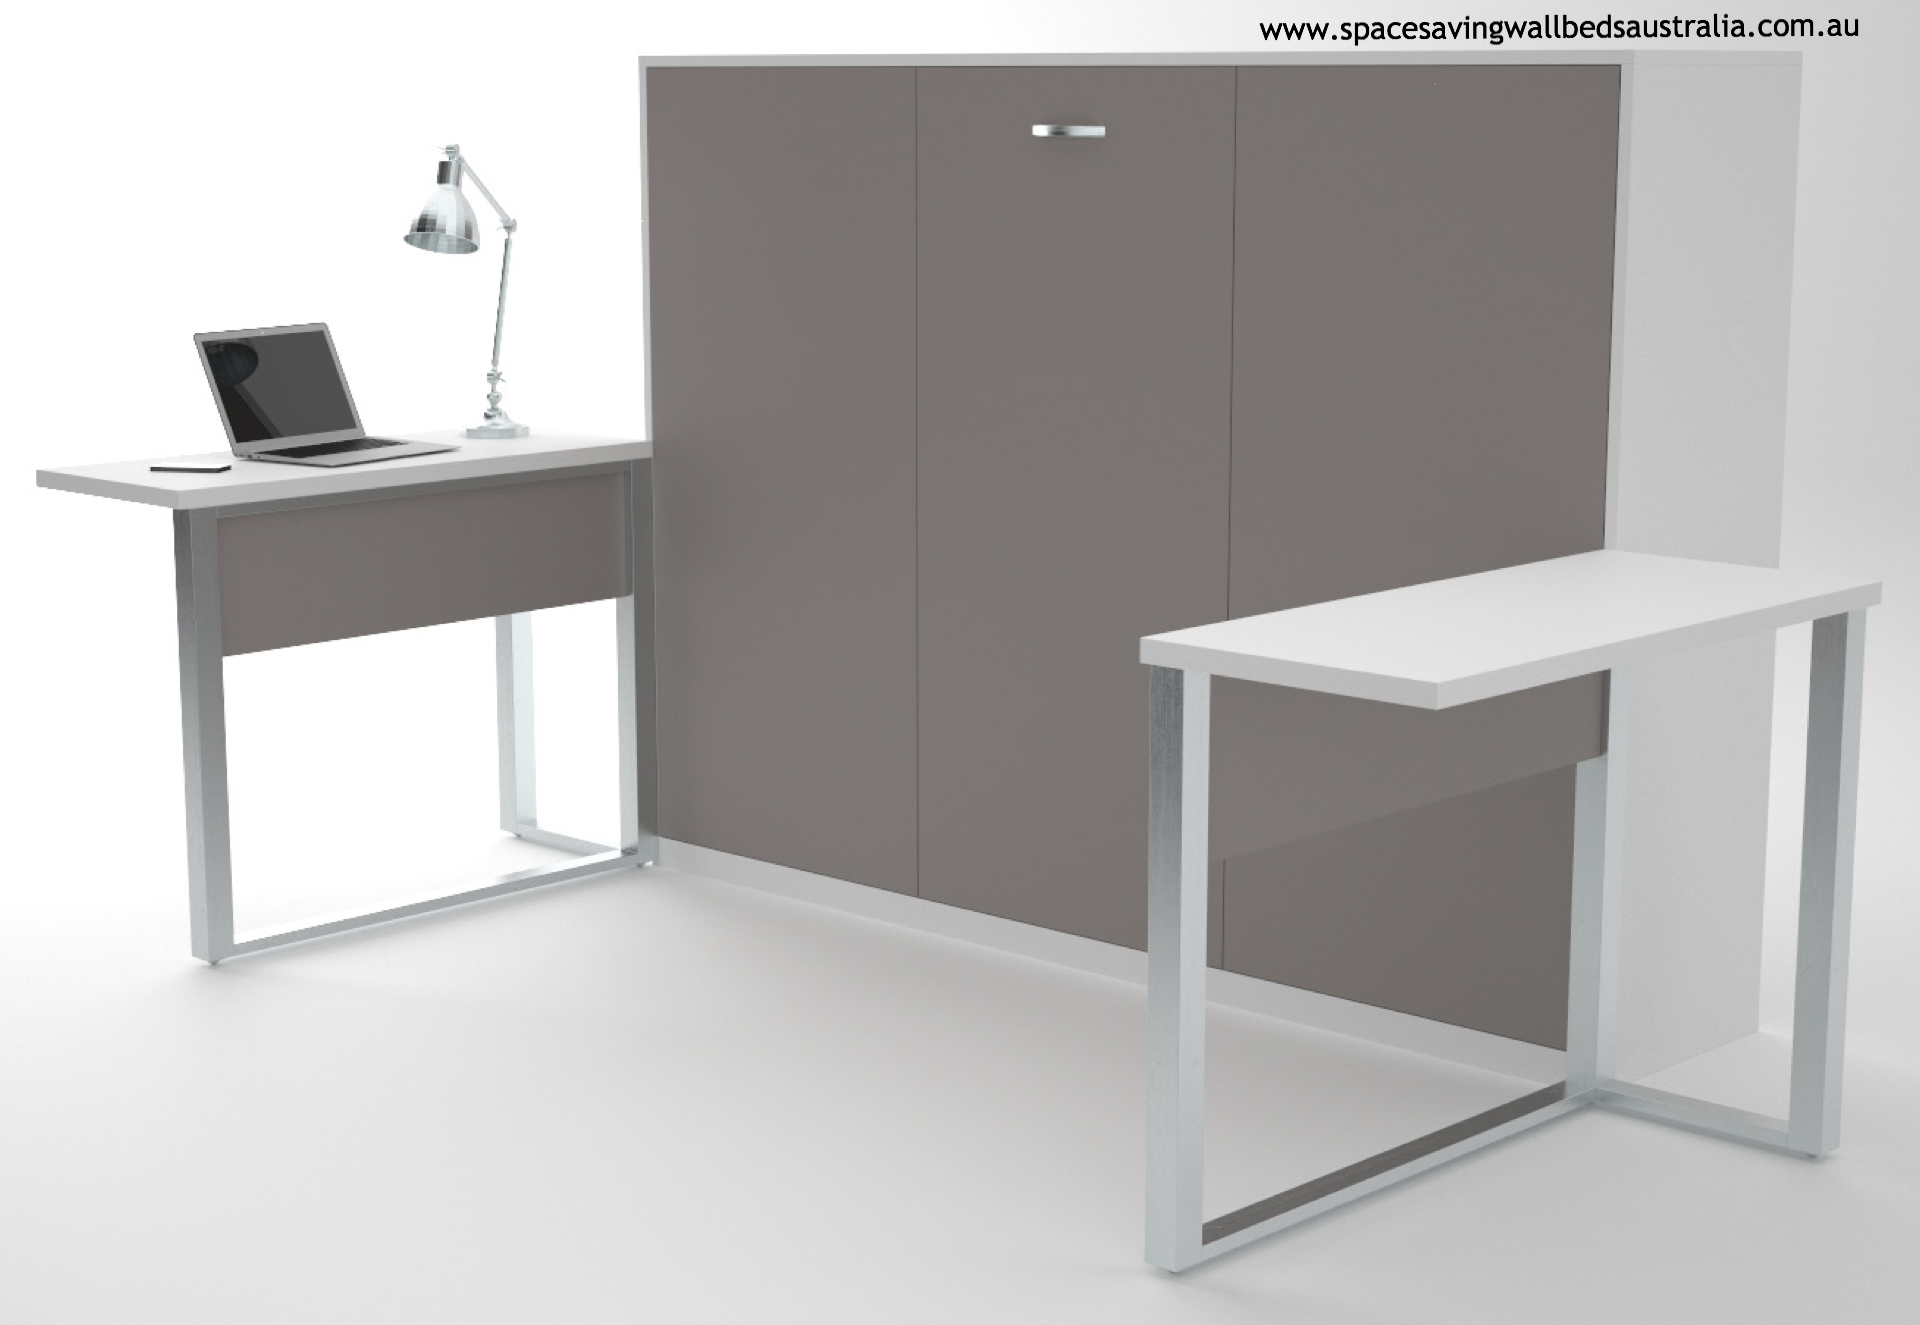 desk as office a table bed doubles down murphy that or home pin hidden for perfect fold room wallbed wall with guest